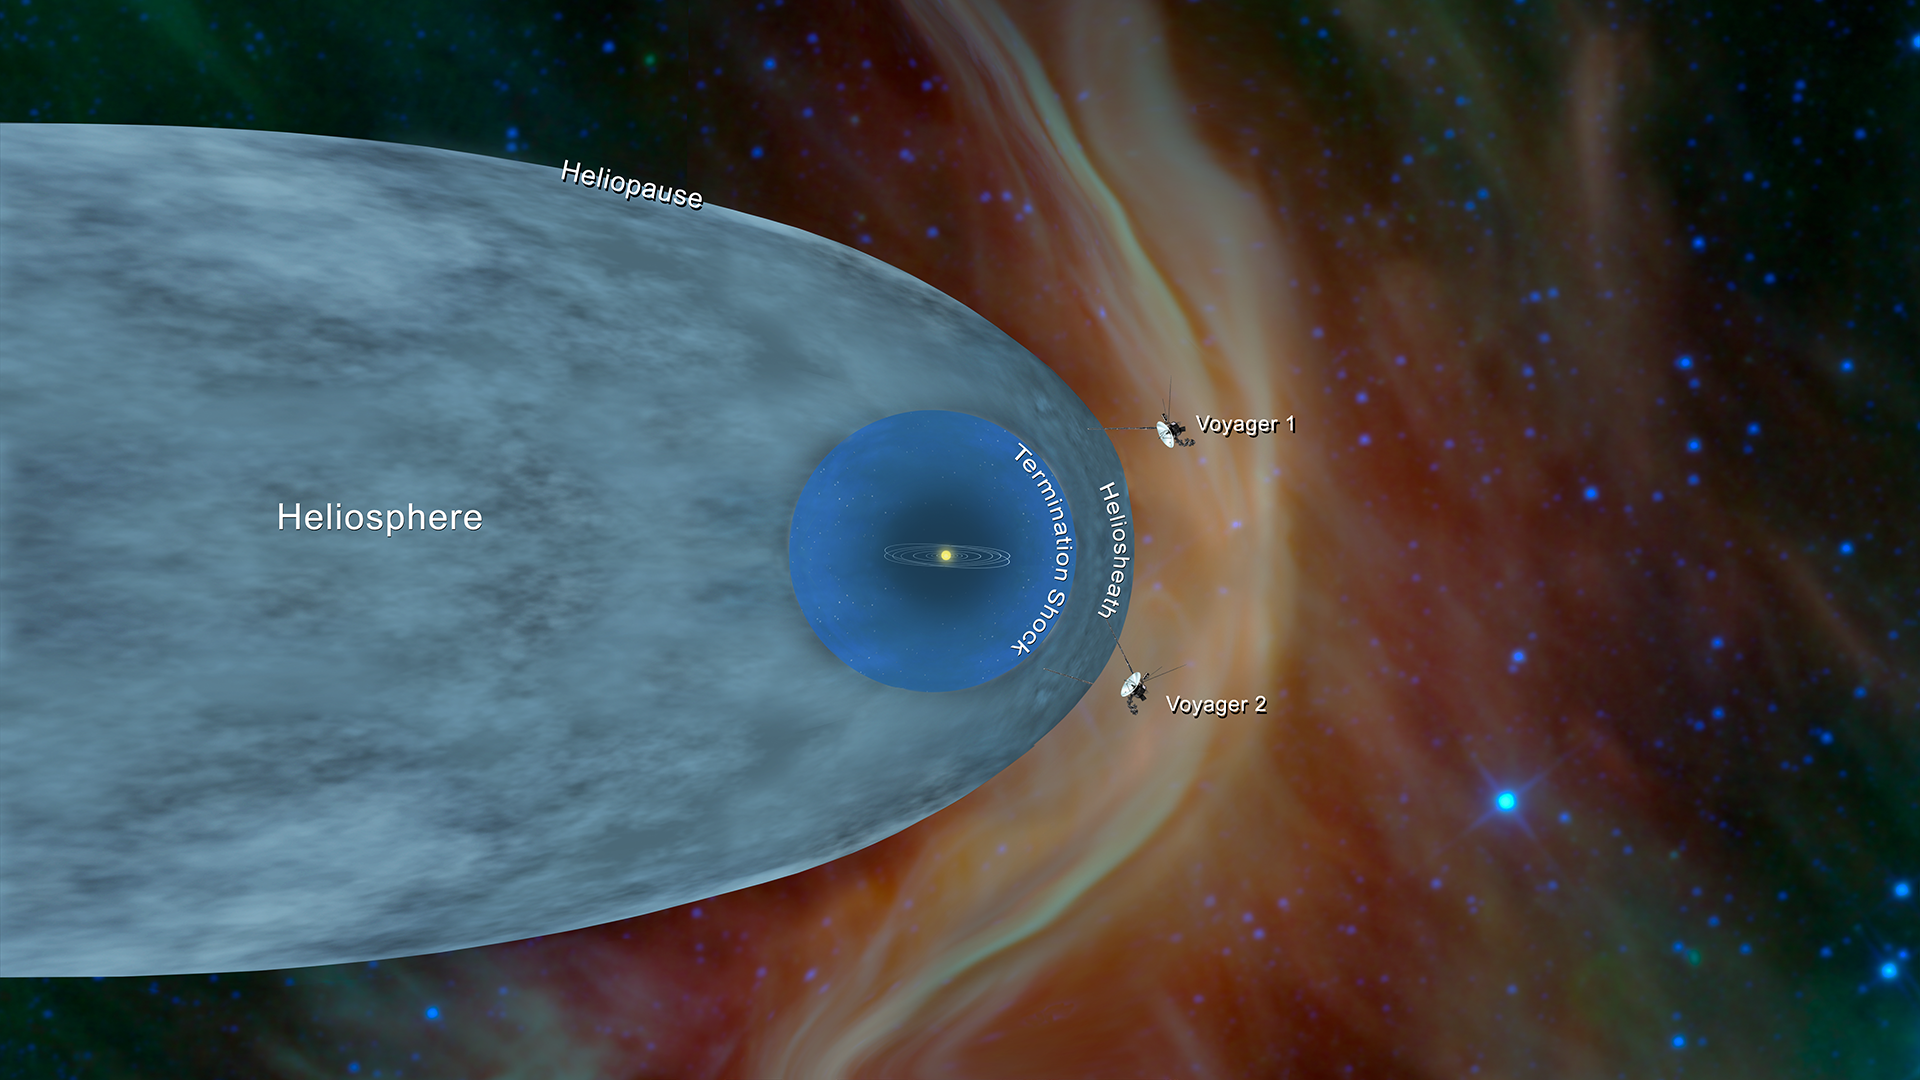 Image: This illustration shows the position of NASA's Voyager 1 and Voyager 2 probes, outside of the heliosphere, a protective bubble created by the Sun that extends well past the orbit of Pluto. Credits: NASA/JPL-Caltech